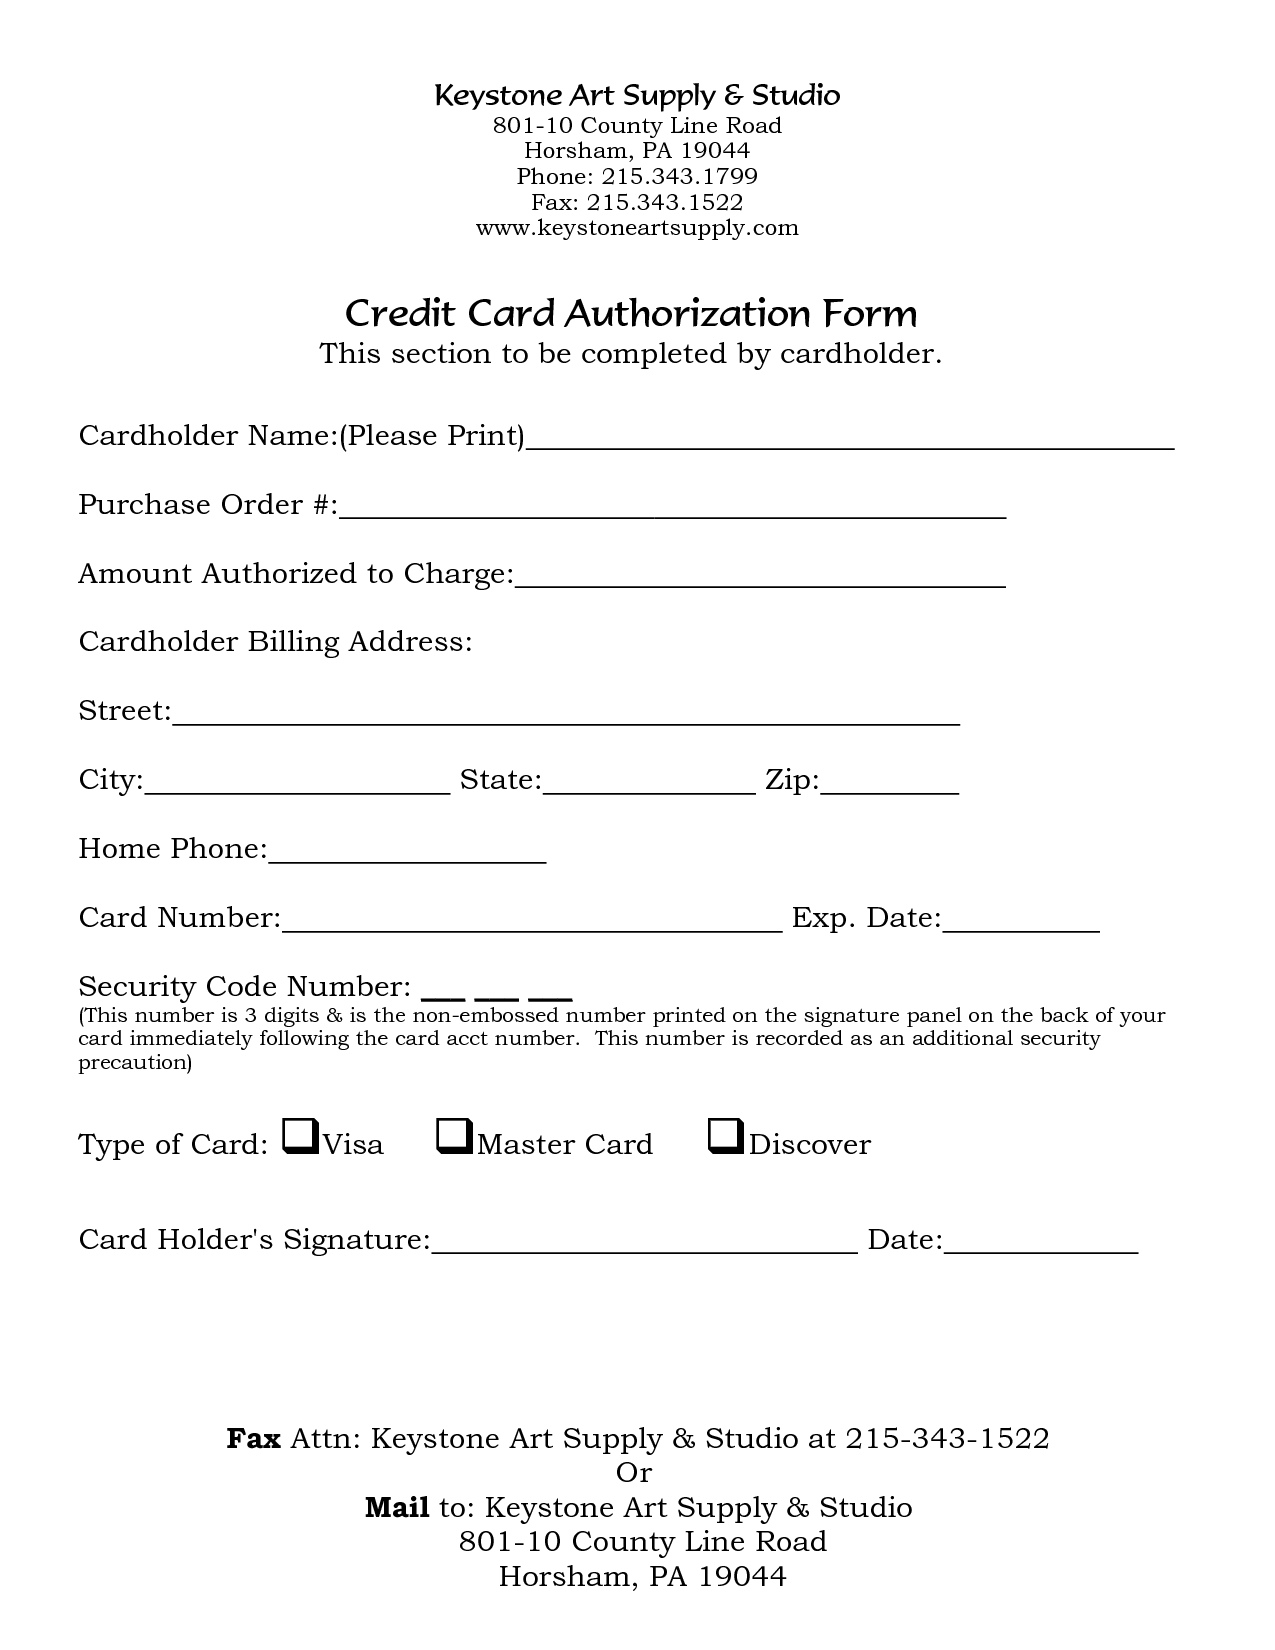 Sample credit card authorization form charlotte clergy coalition free credit card payment form template credit card authorization reheart Image collections